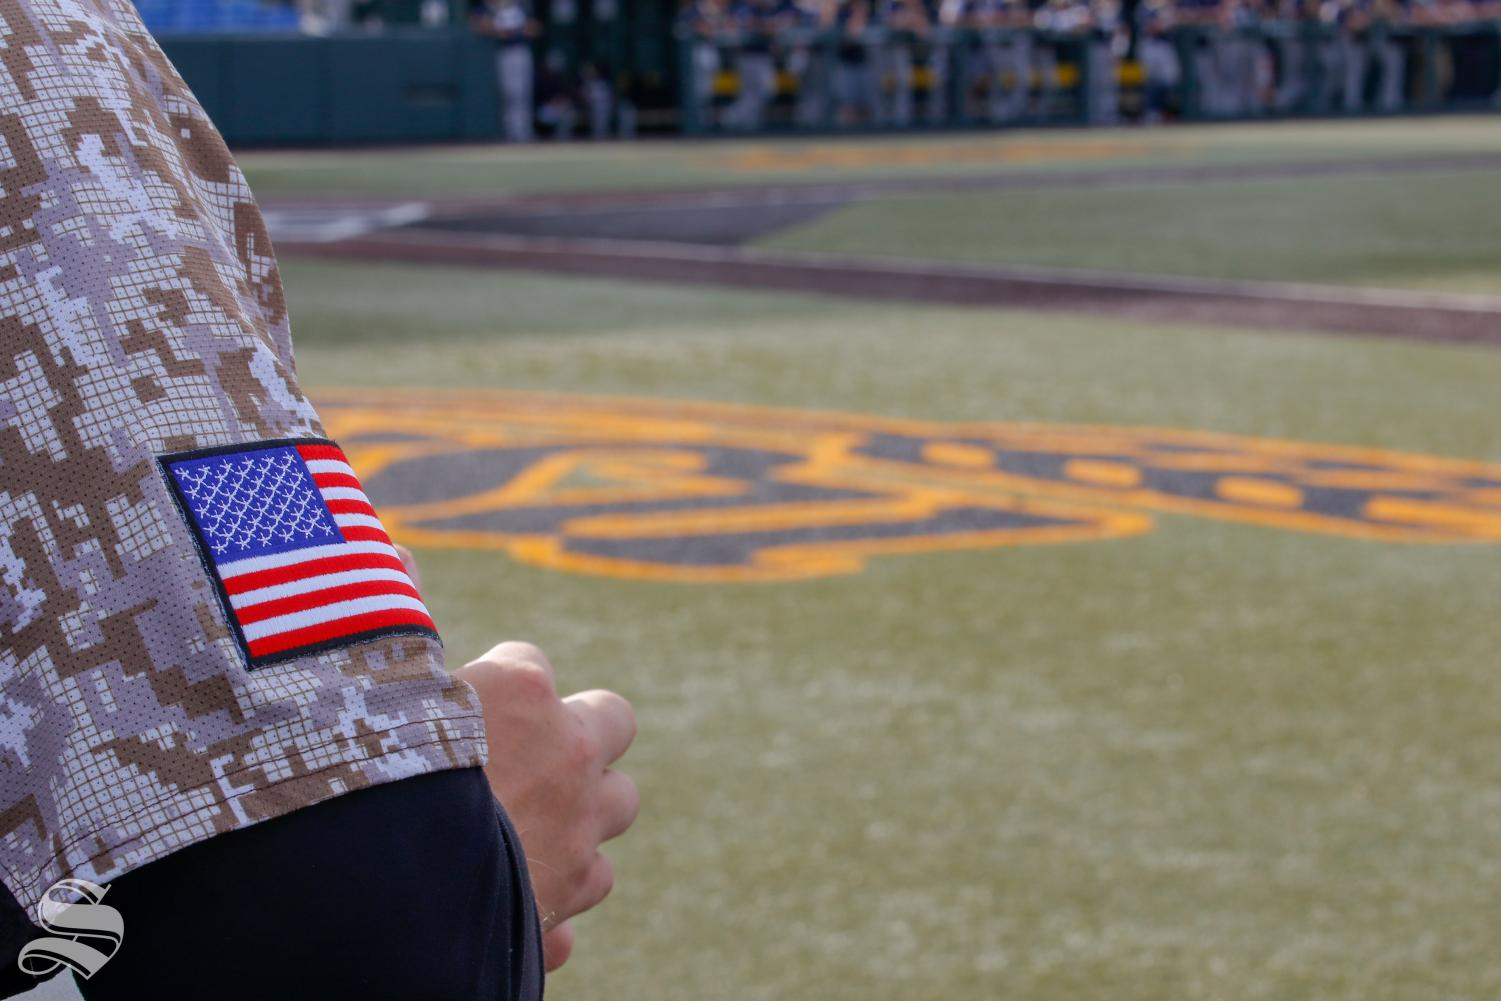 Wichita State displays the American Flag on their sleeves as part of their military appreciation uniform.